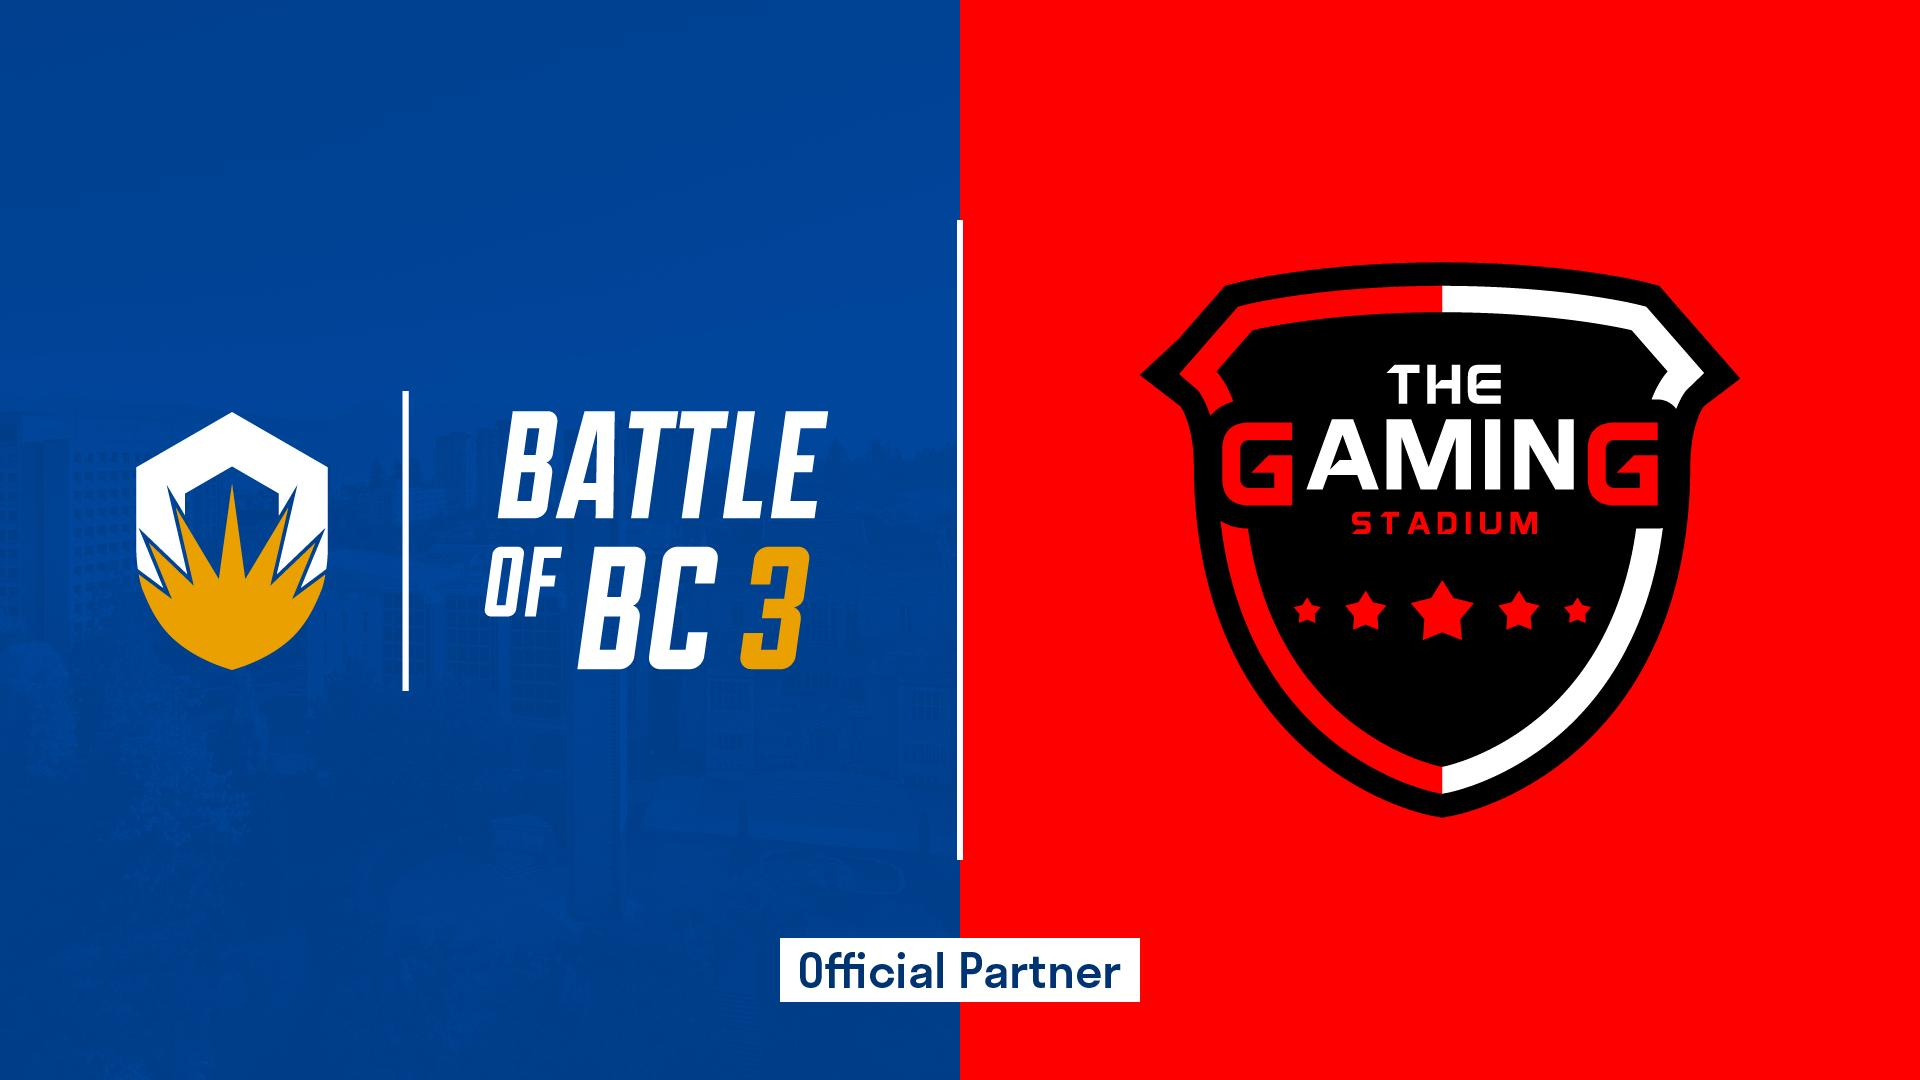 Ubc Esports På Twitter We Re Incredibly Excited To Announce That The Gaming Stadium Is Joining Battle Of Bc 3 As A Premiere Partner This Event Would Not Be Possible Without Their Generous